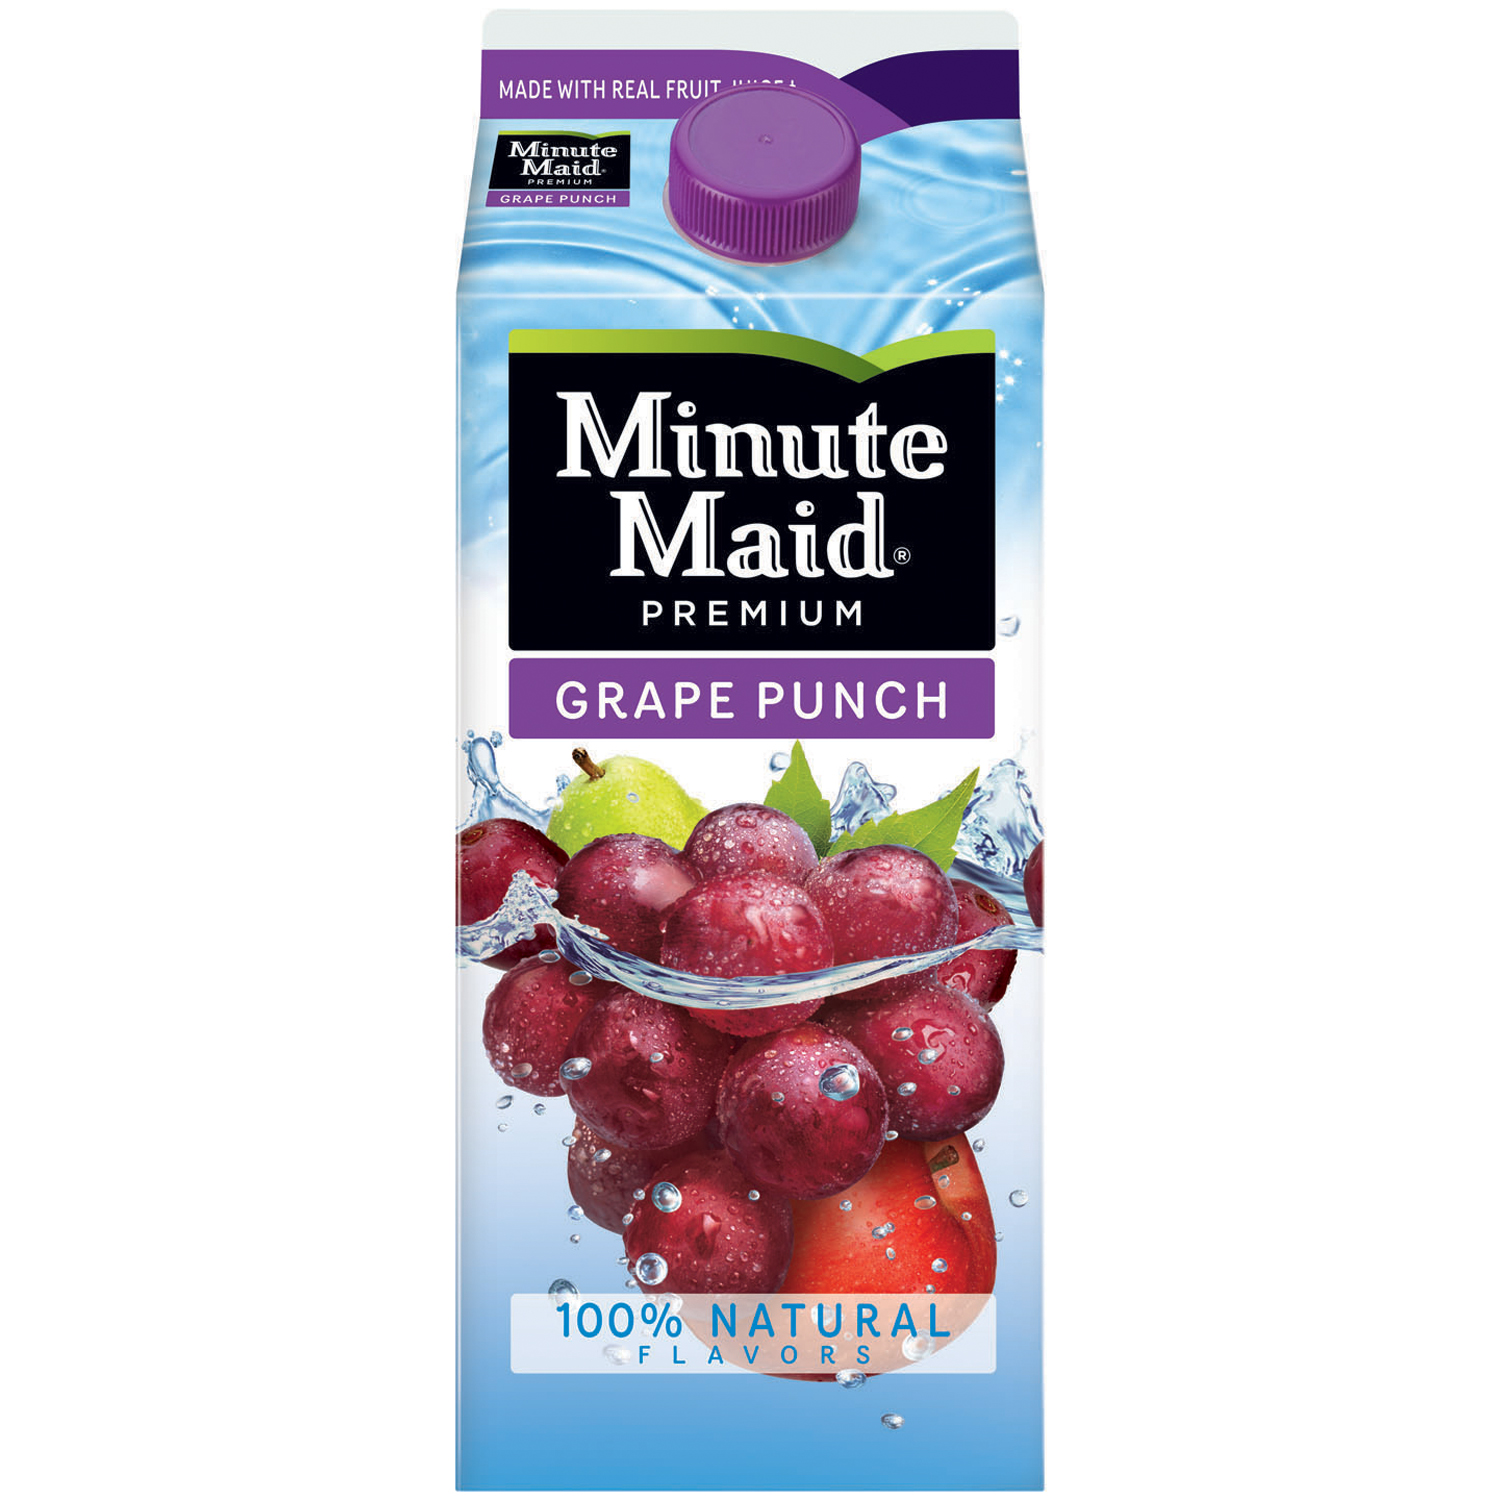 Minute Maid® Premium Grape Punch 59 fl. oz. Carton